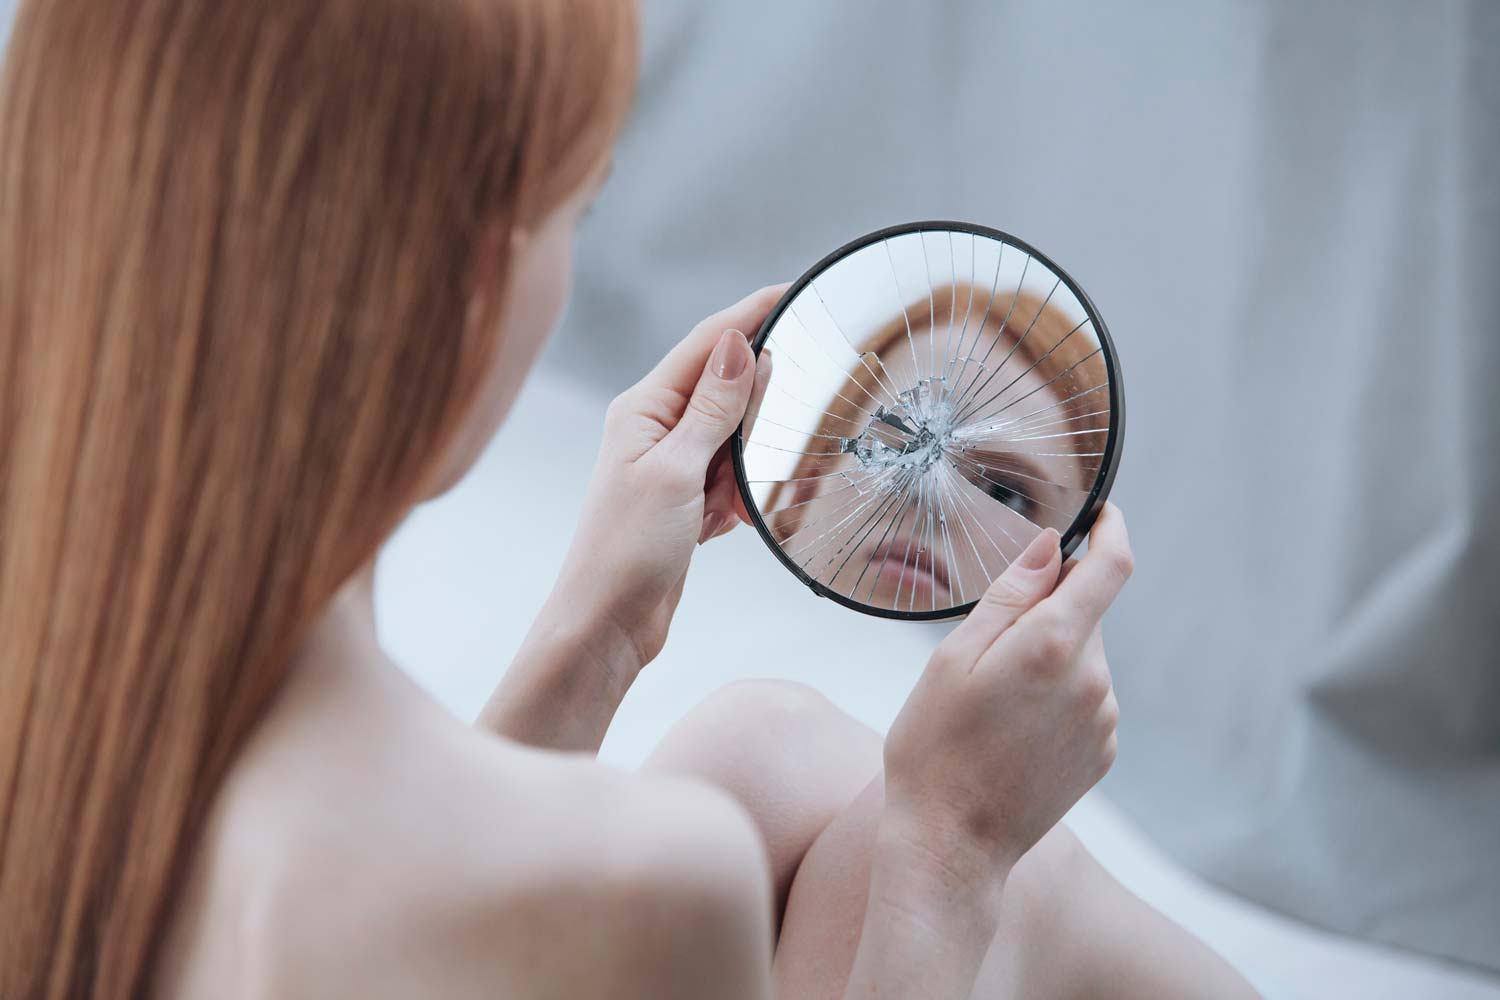 Body Dysmorphic Disorder in aesthetics: the role of the practitioner - Image showing the distorted reflection of a women in a small mirror